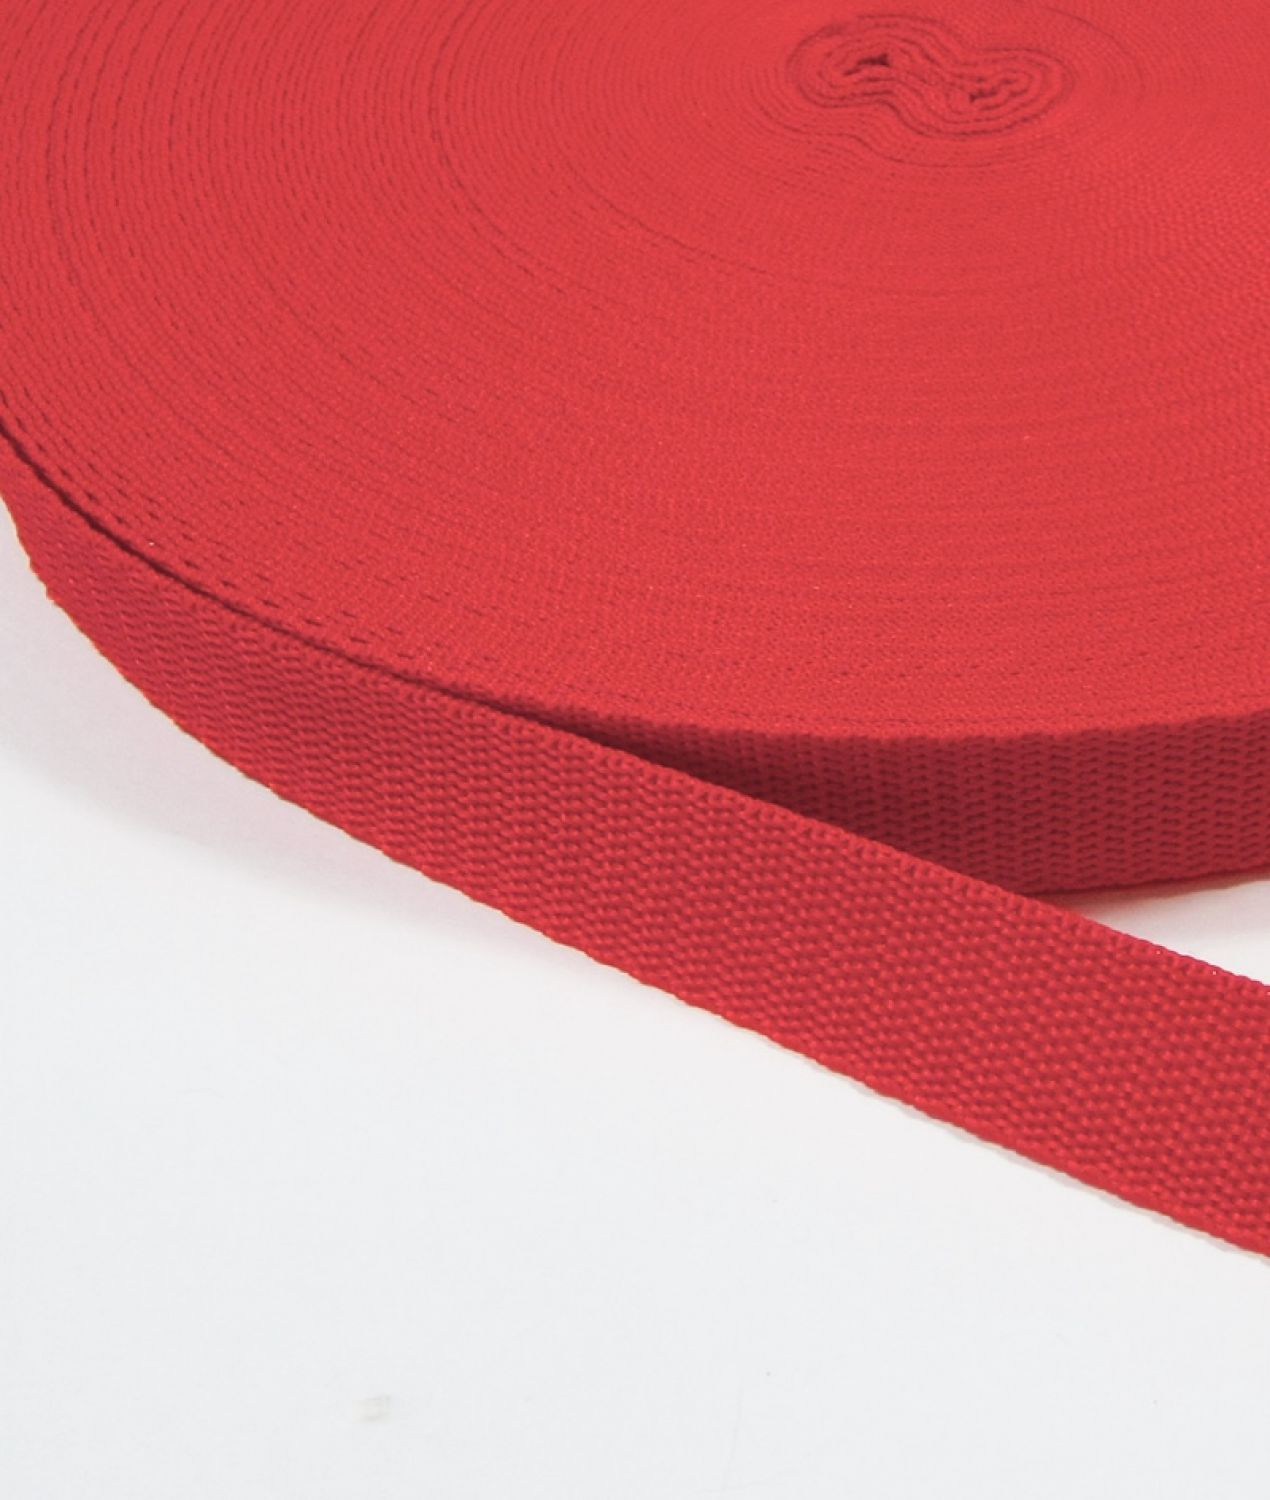 Gurtband Polyester 20 mm ROT